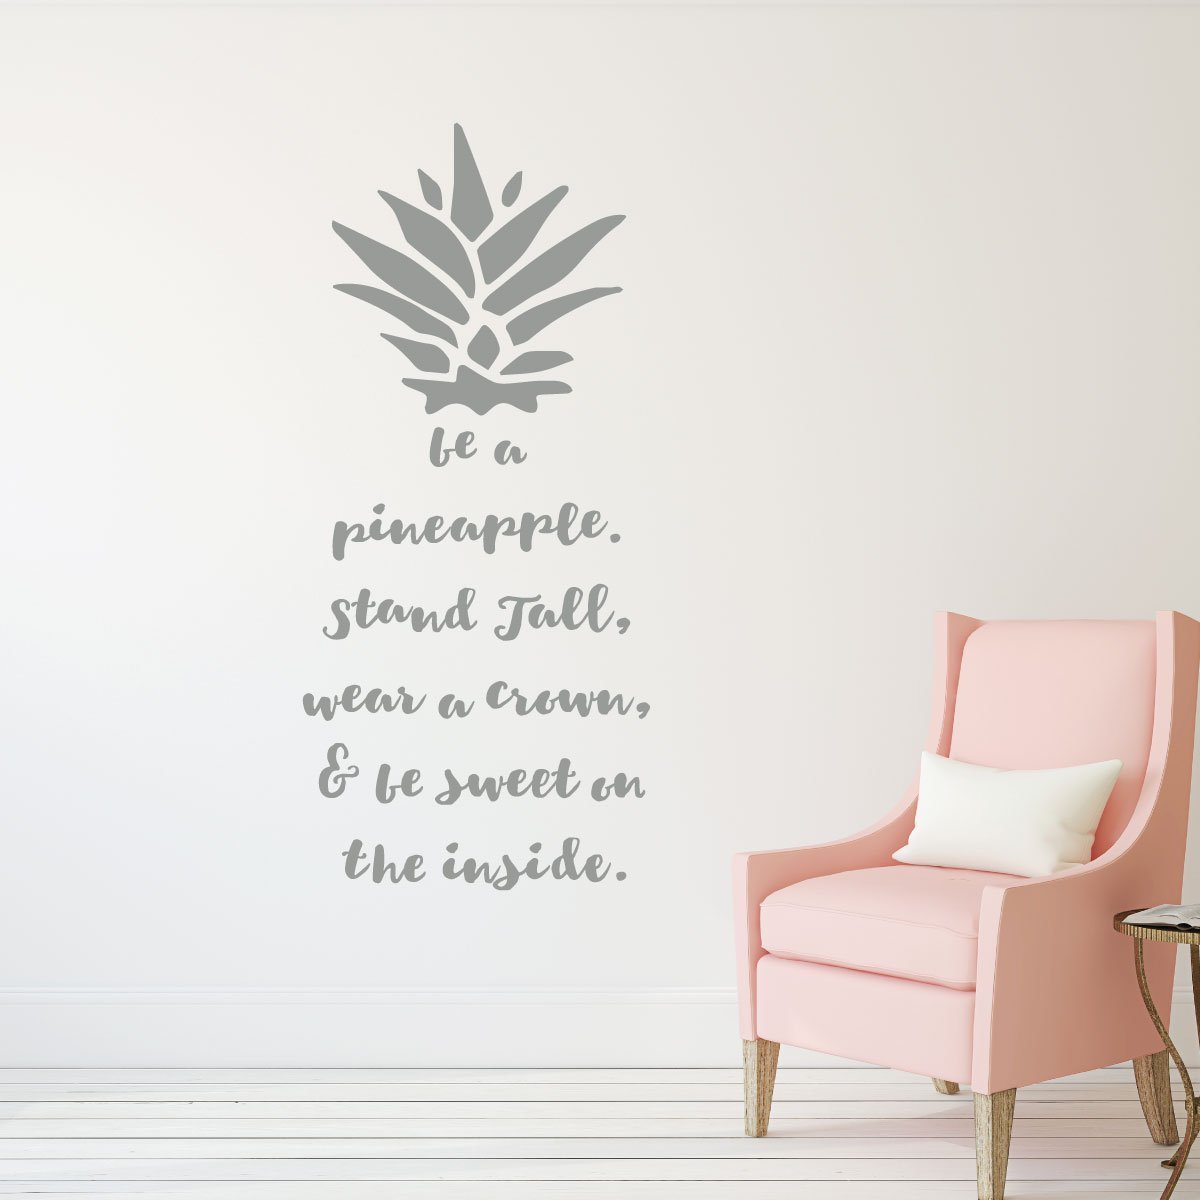 Be A Pineapple Wall Decal -Removable Sticker - with Hawaiian Tropical Pineapple Design - Pineapple Decor -Teen Girl Bedroom Decor, Vinyl Art